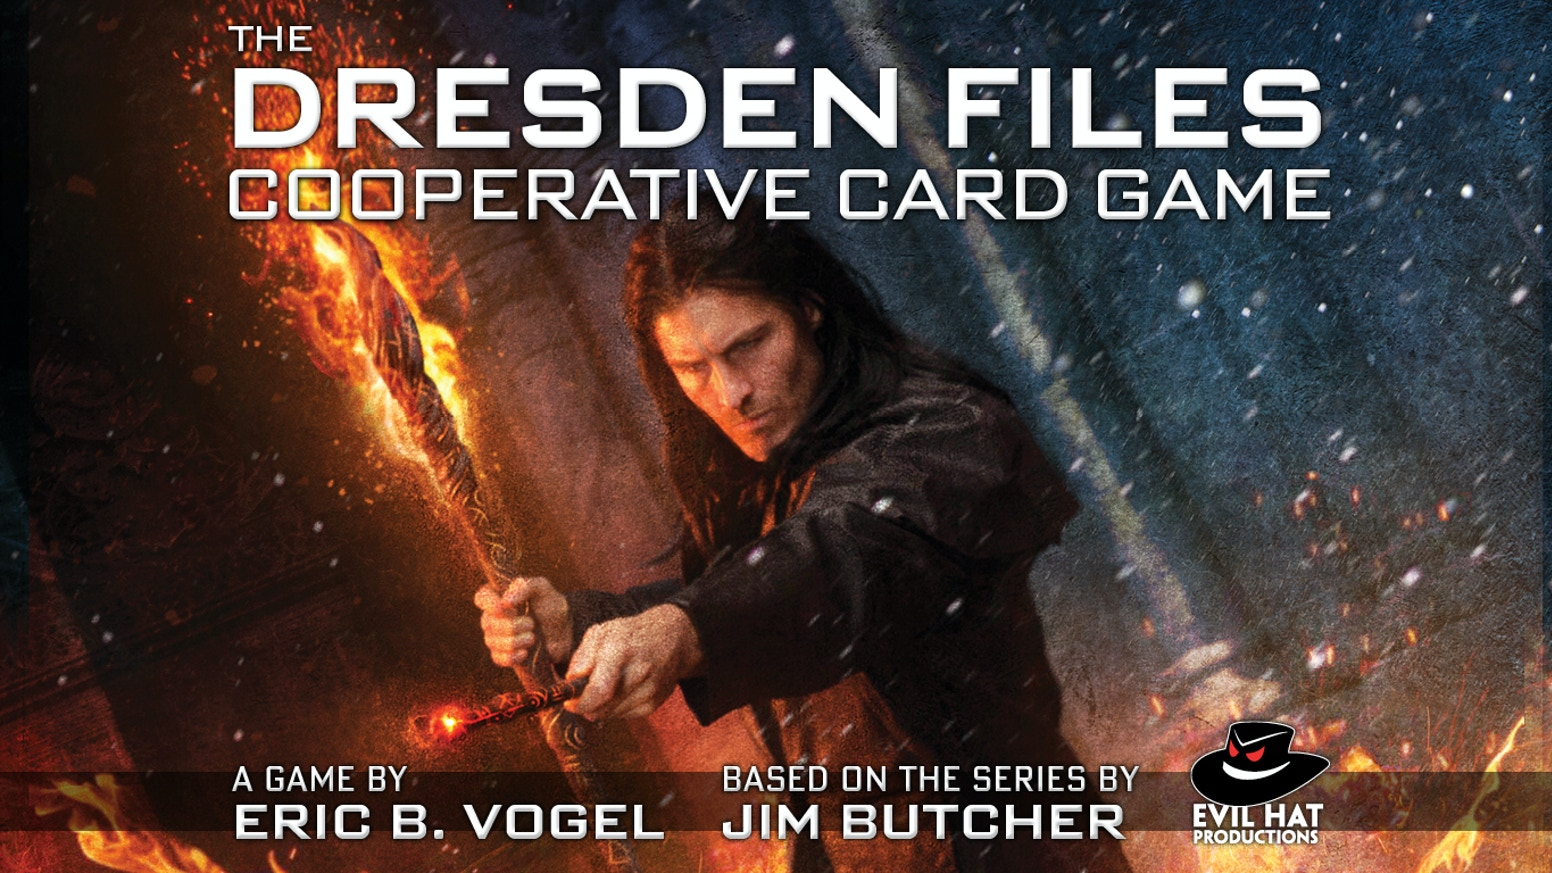 Play Harry Dresden & his friends in this tense, strategic co-op card game from Evil Hat, based on Jim Butcher's NYT bestselling novels!